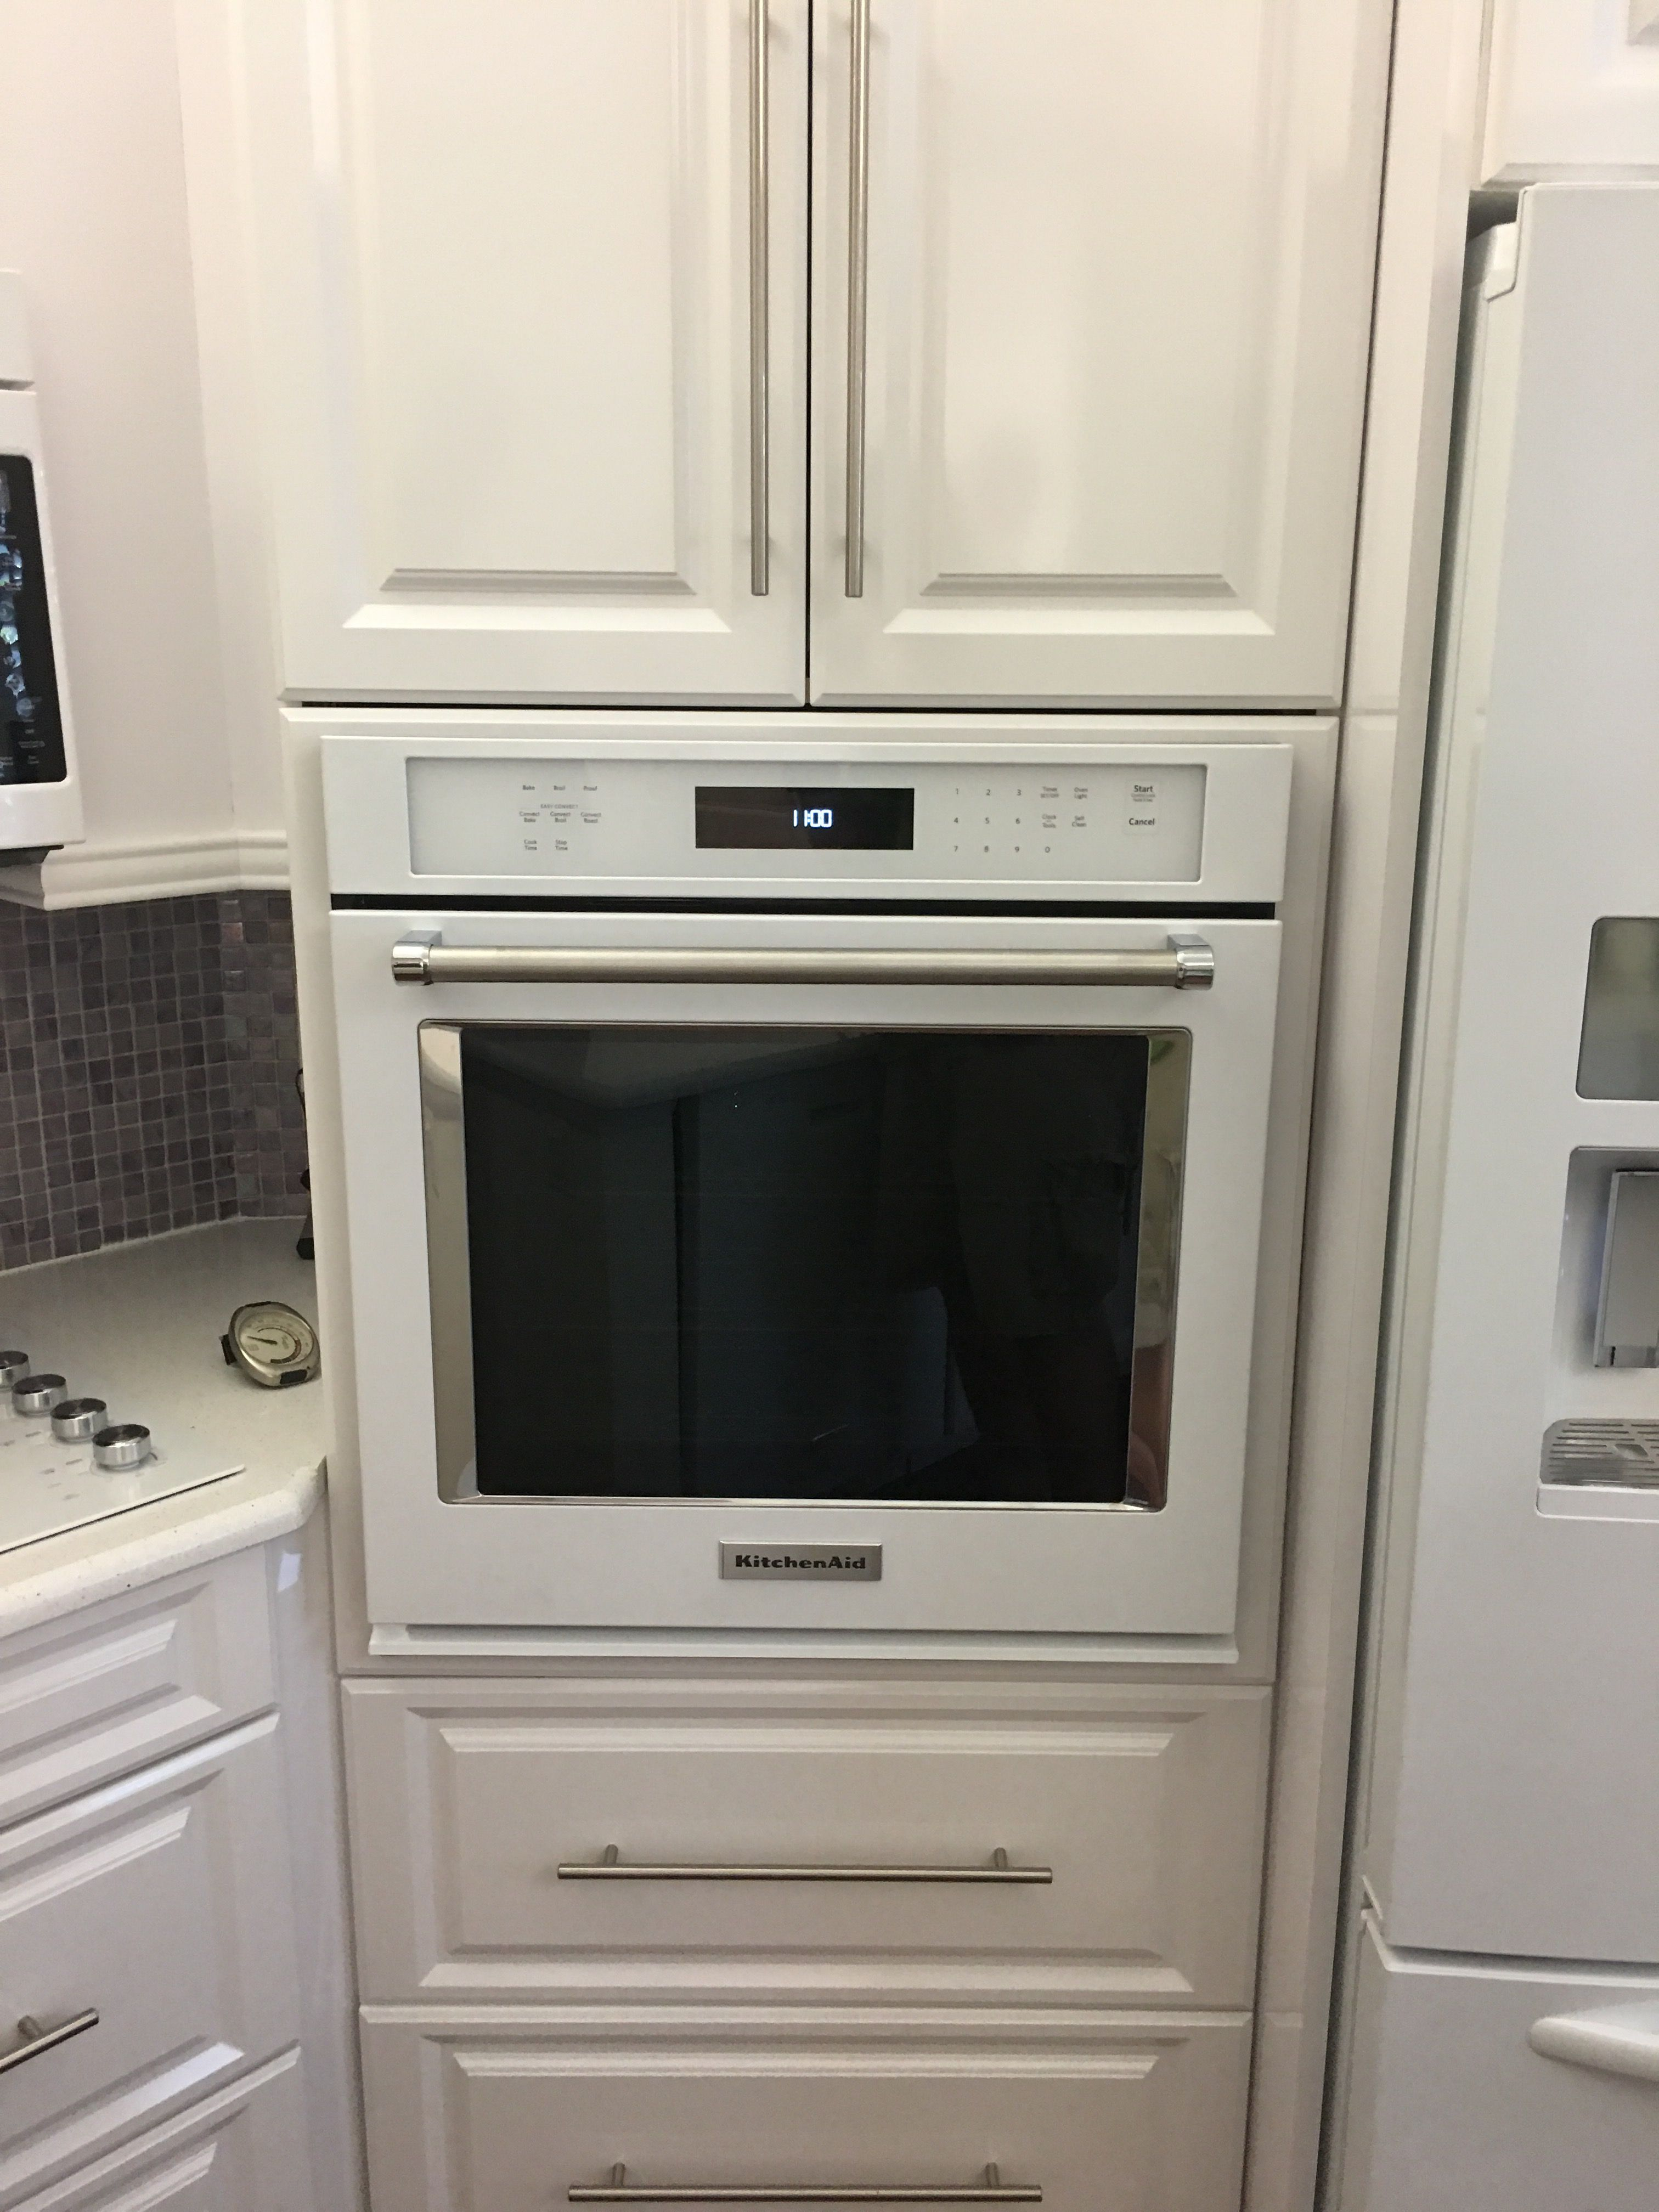 Single Wall Oven Installation We Have Over 15 Years Experience Installing And Repairing Appliances Our Experts Can Have Your Oven Delivered And Installed Qui